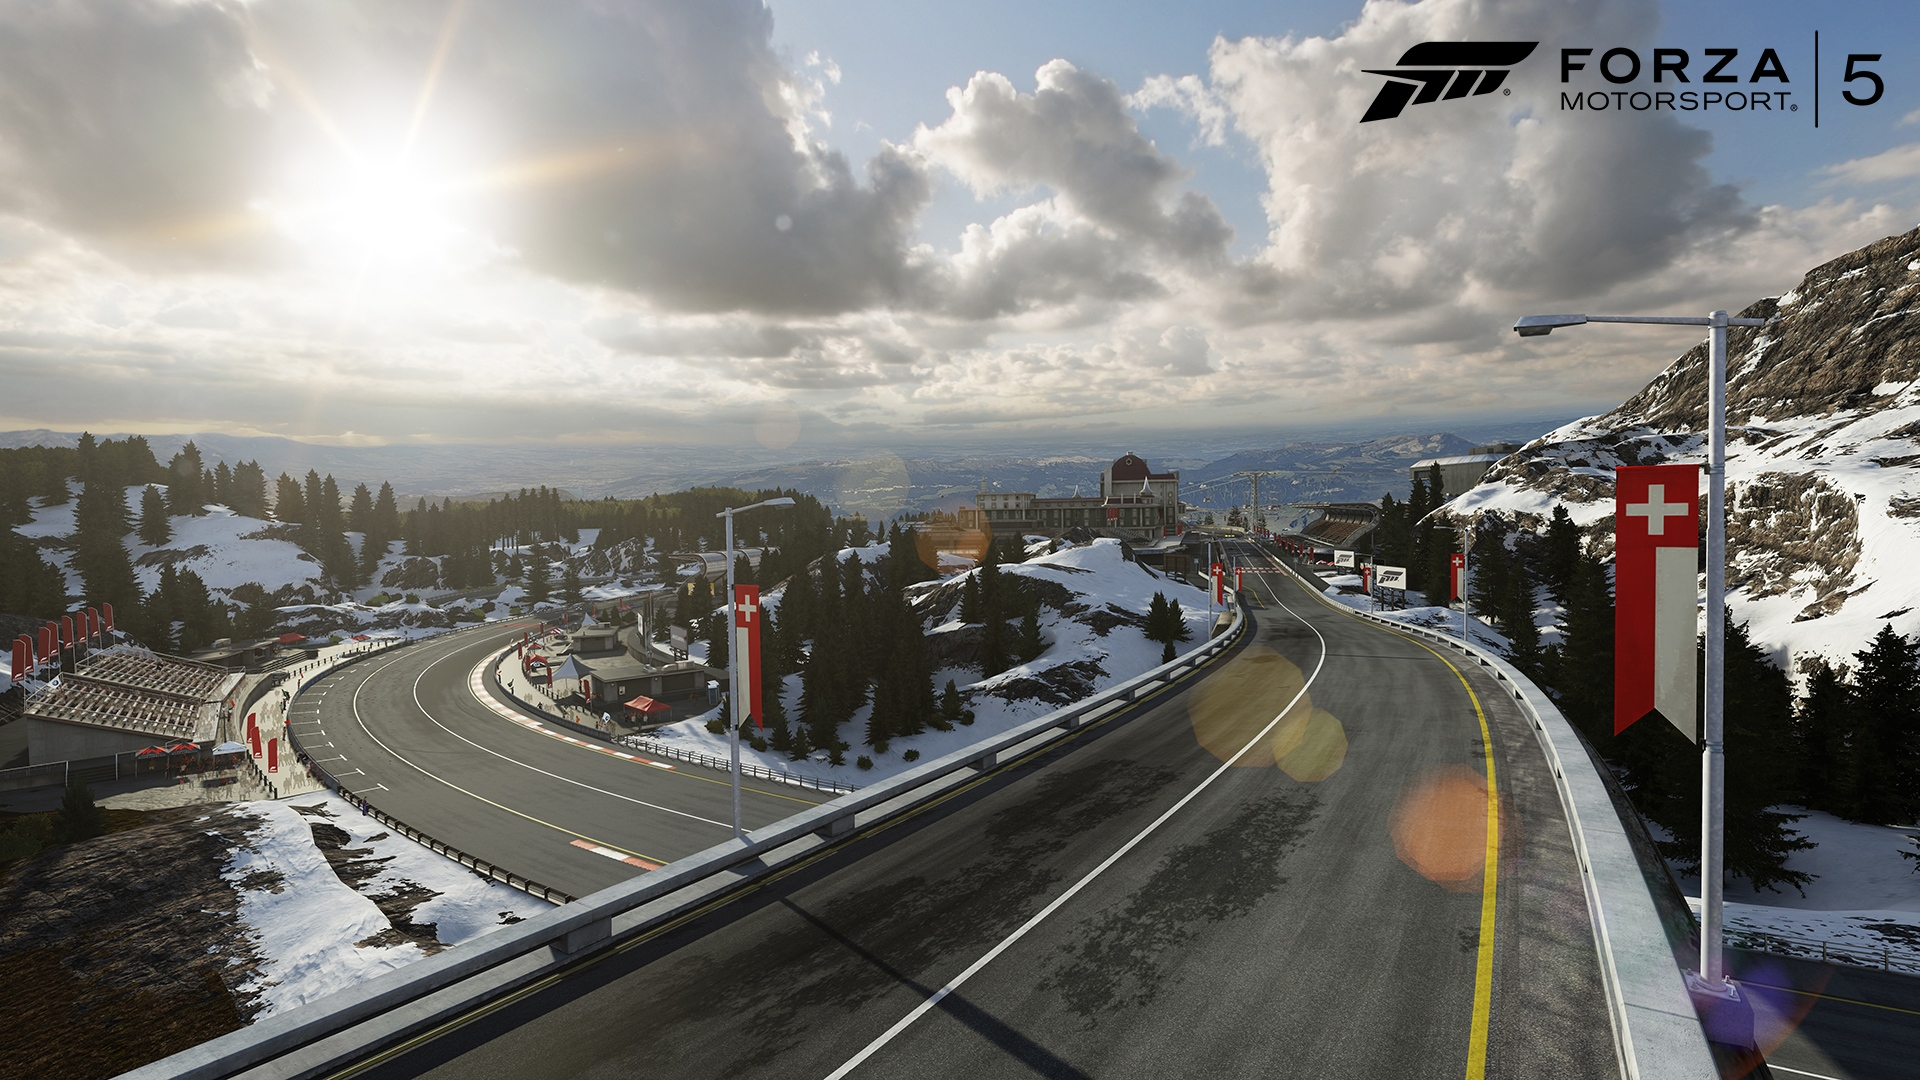 Forza Alps Wm on Pit Race Off Cars